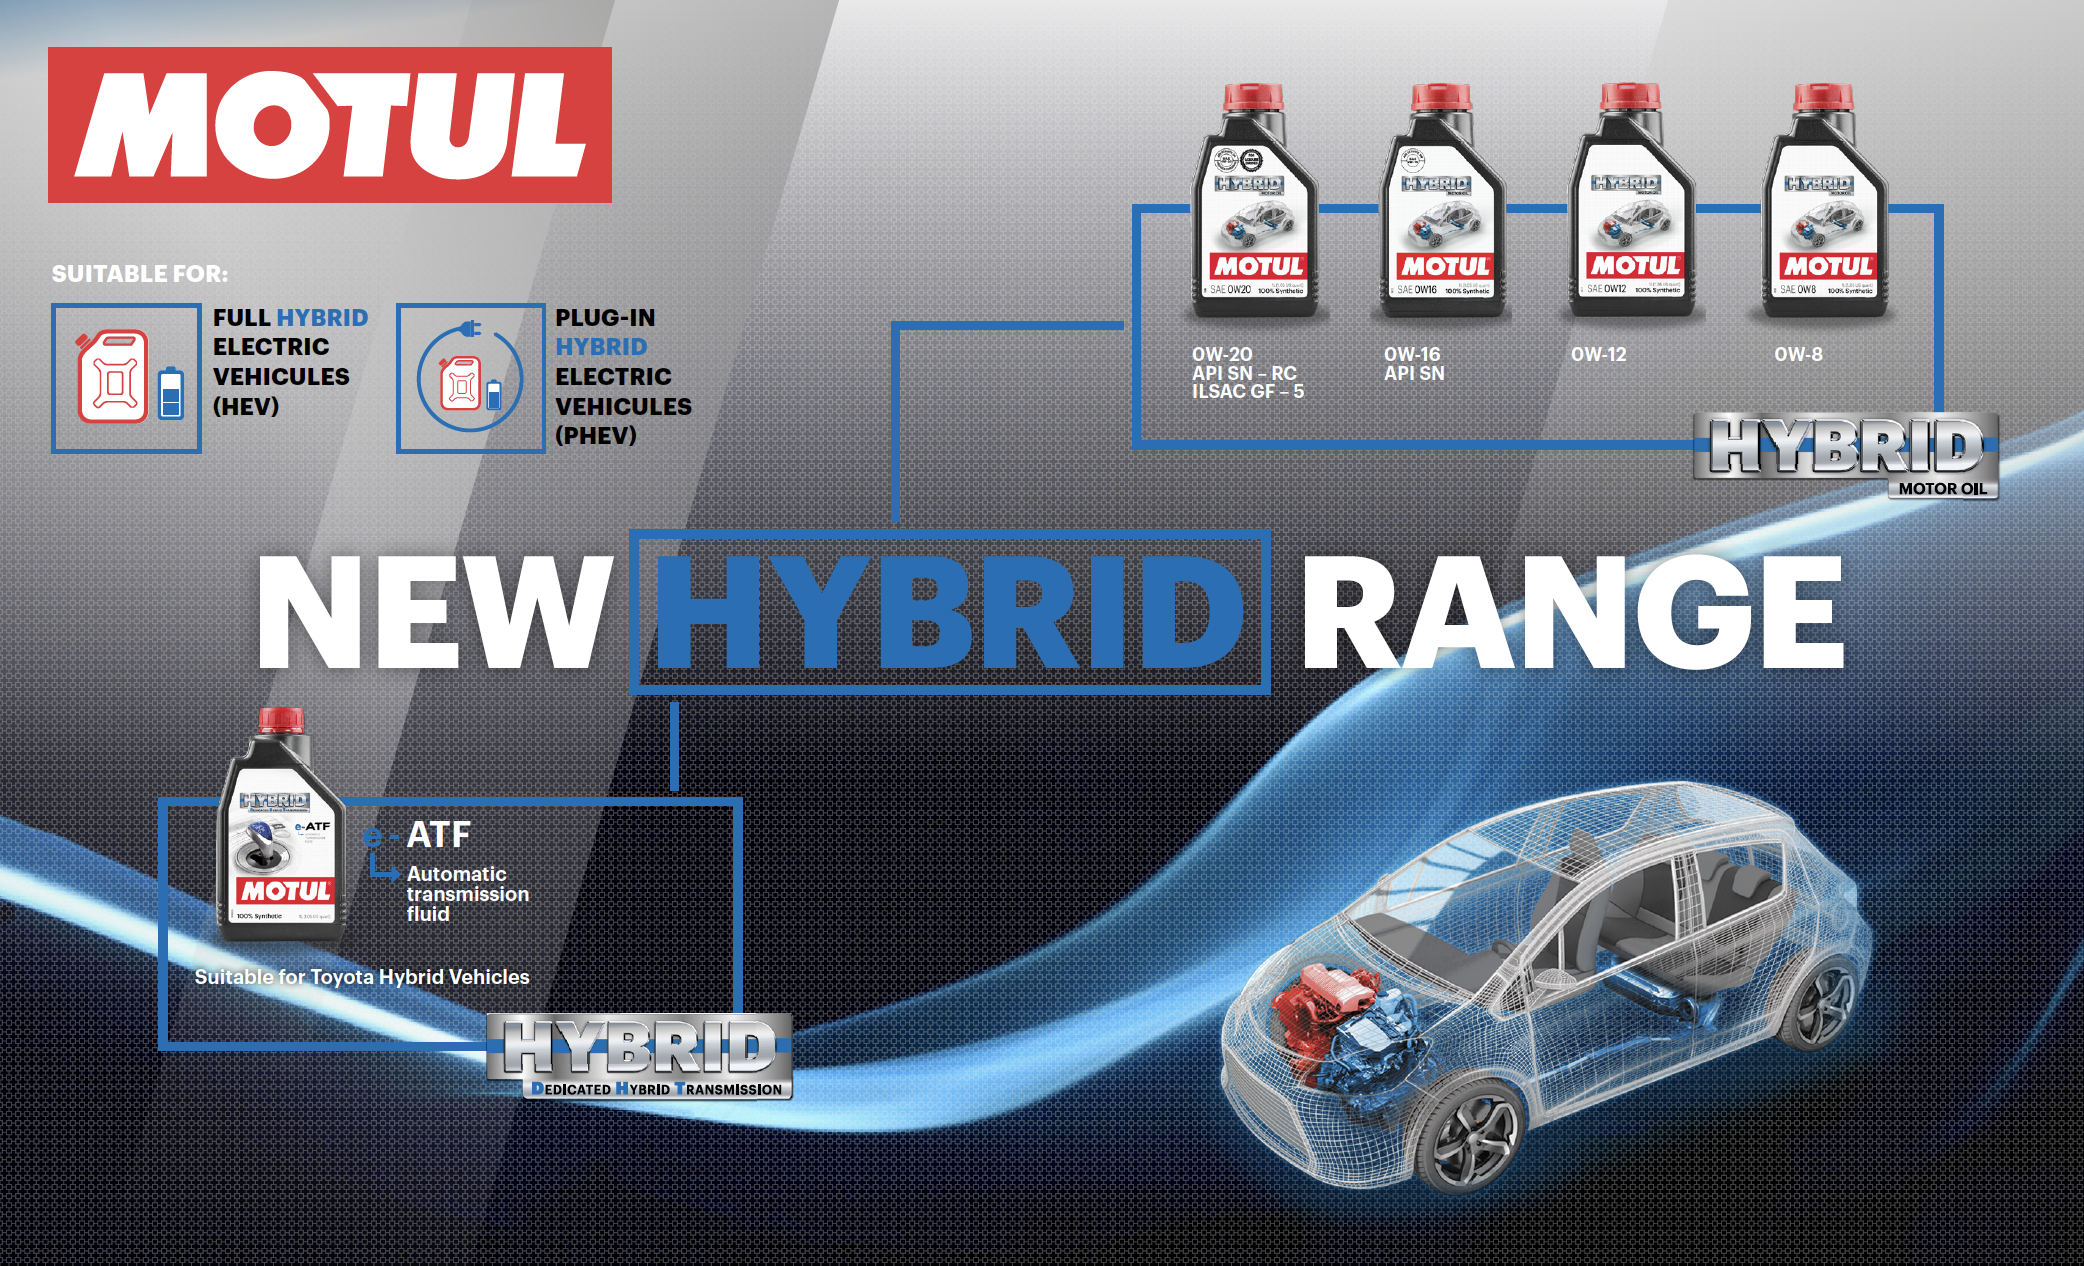 Motul to launch new Hybrid line product with Garage Concept at Automechanika 2018